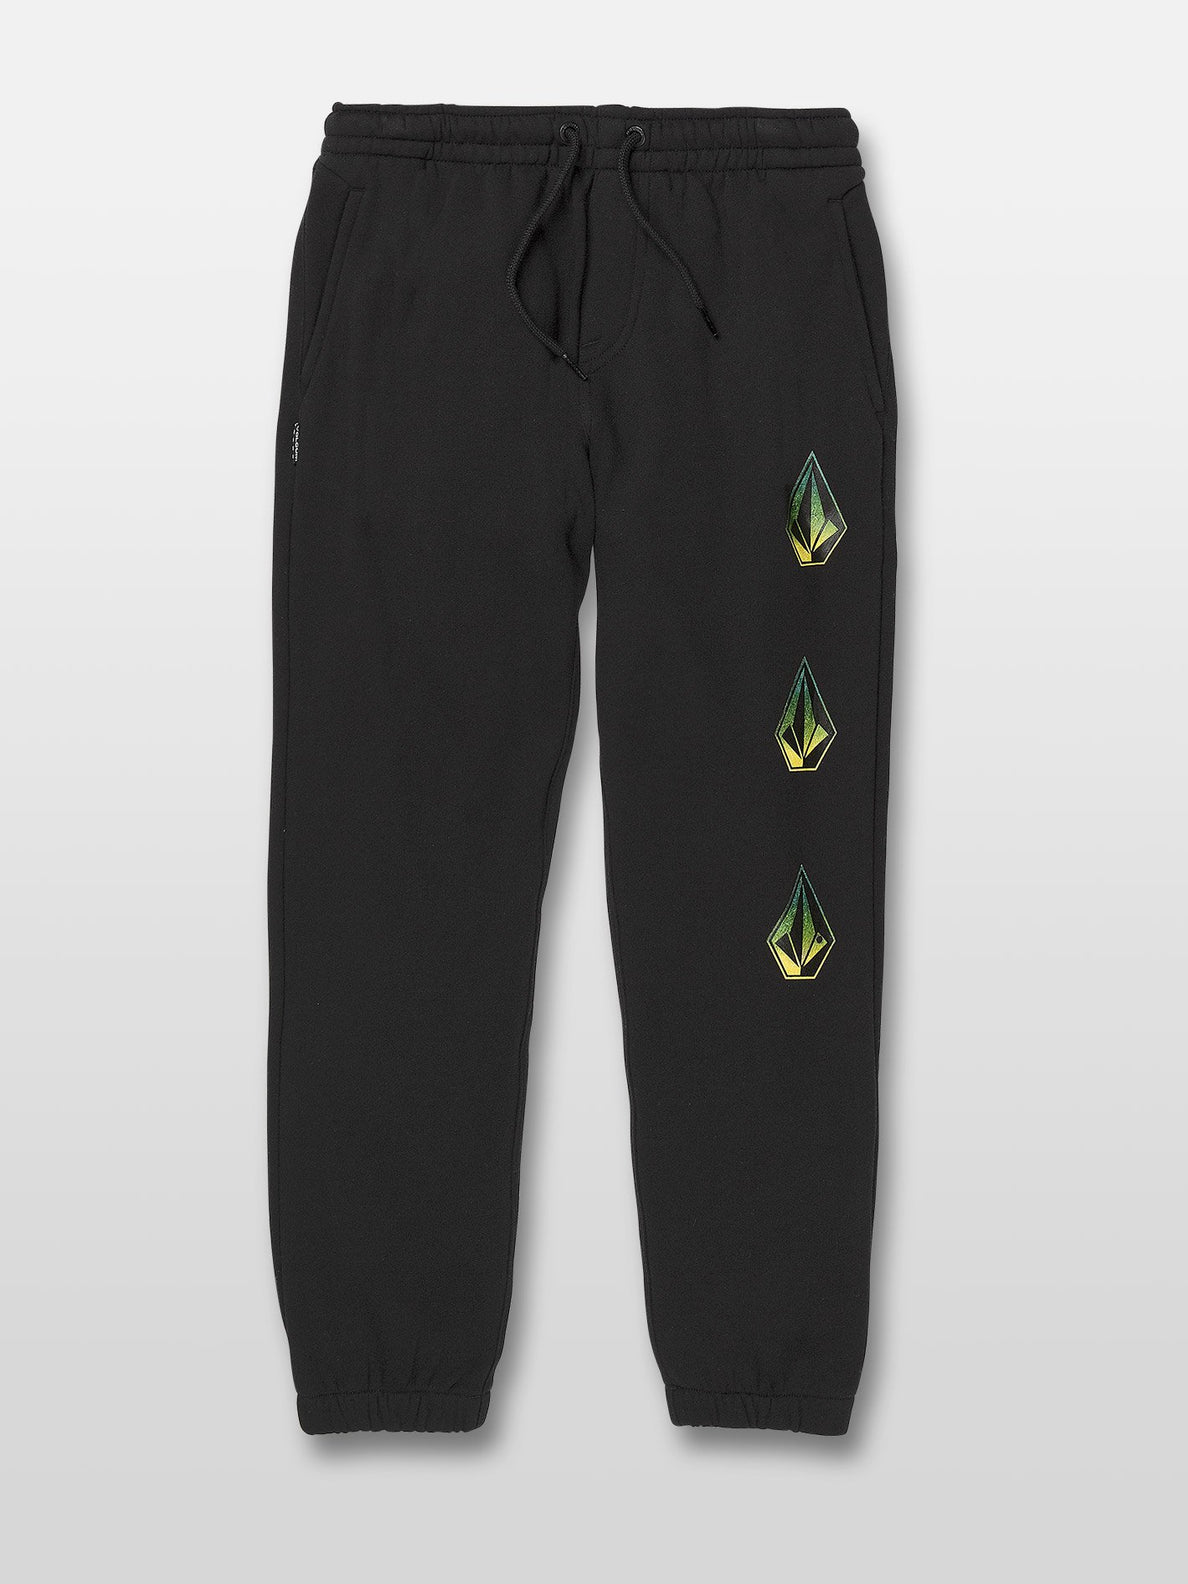 Volcom Deadly Stones Pant Boys/'